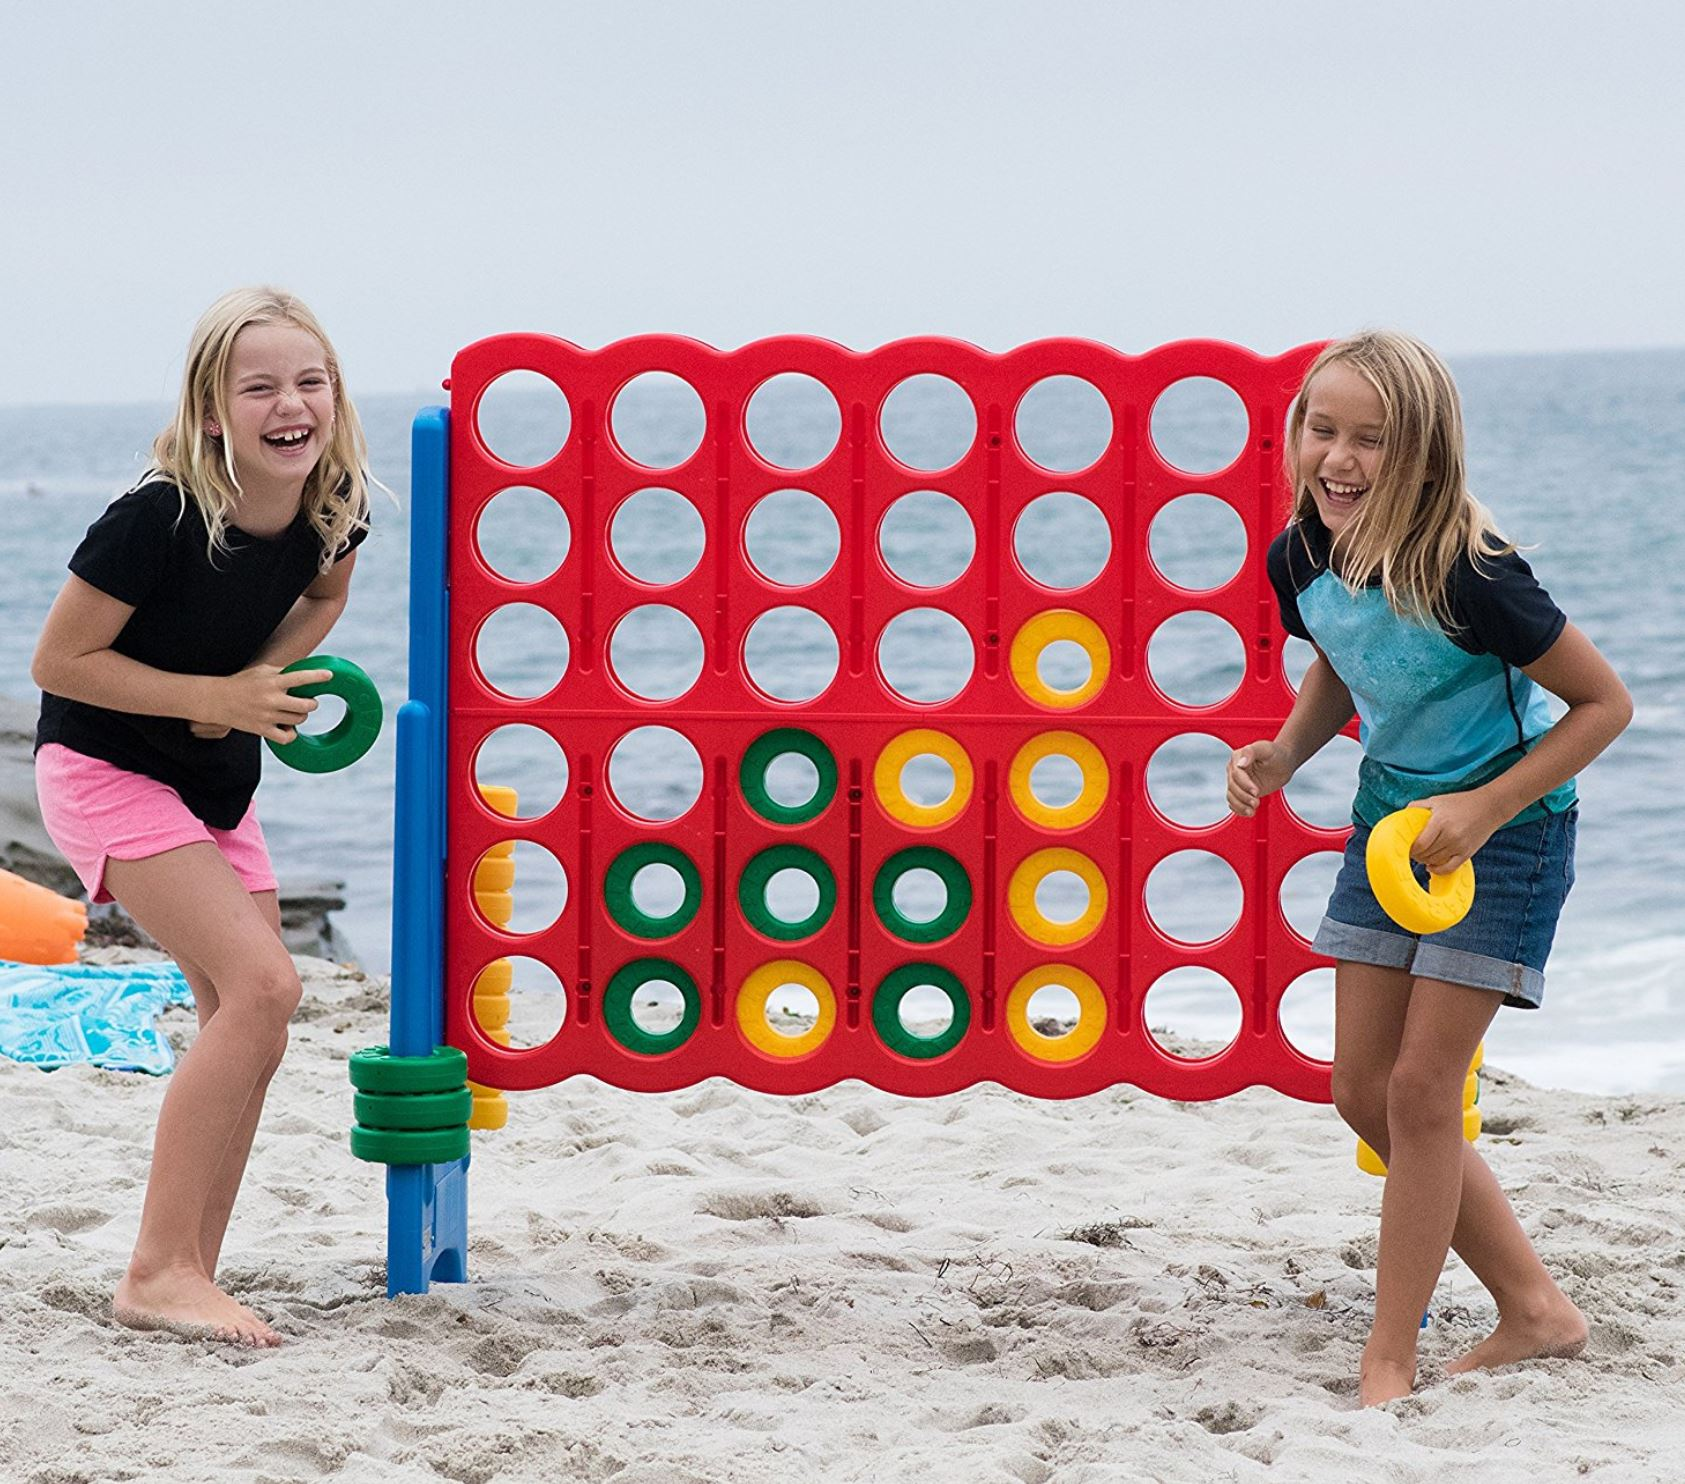 Jumbo Connect 4 - West Palm Beach - Party Carnival Games 786-423-8759